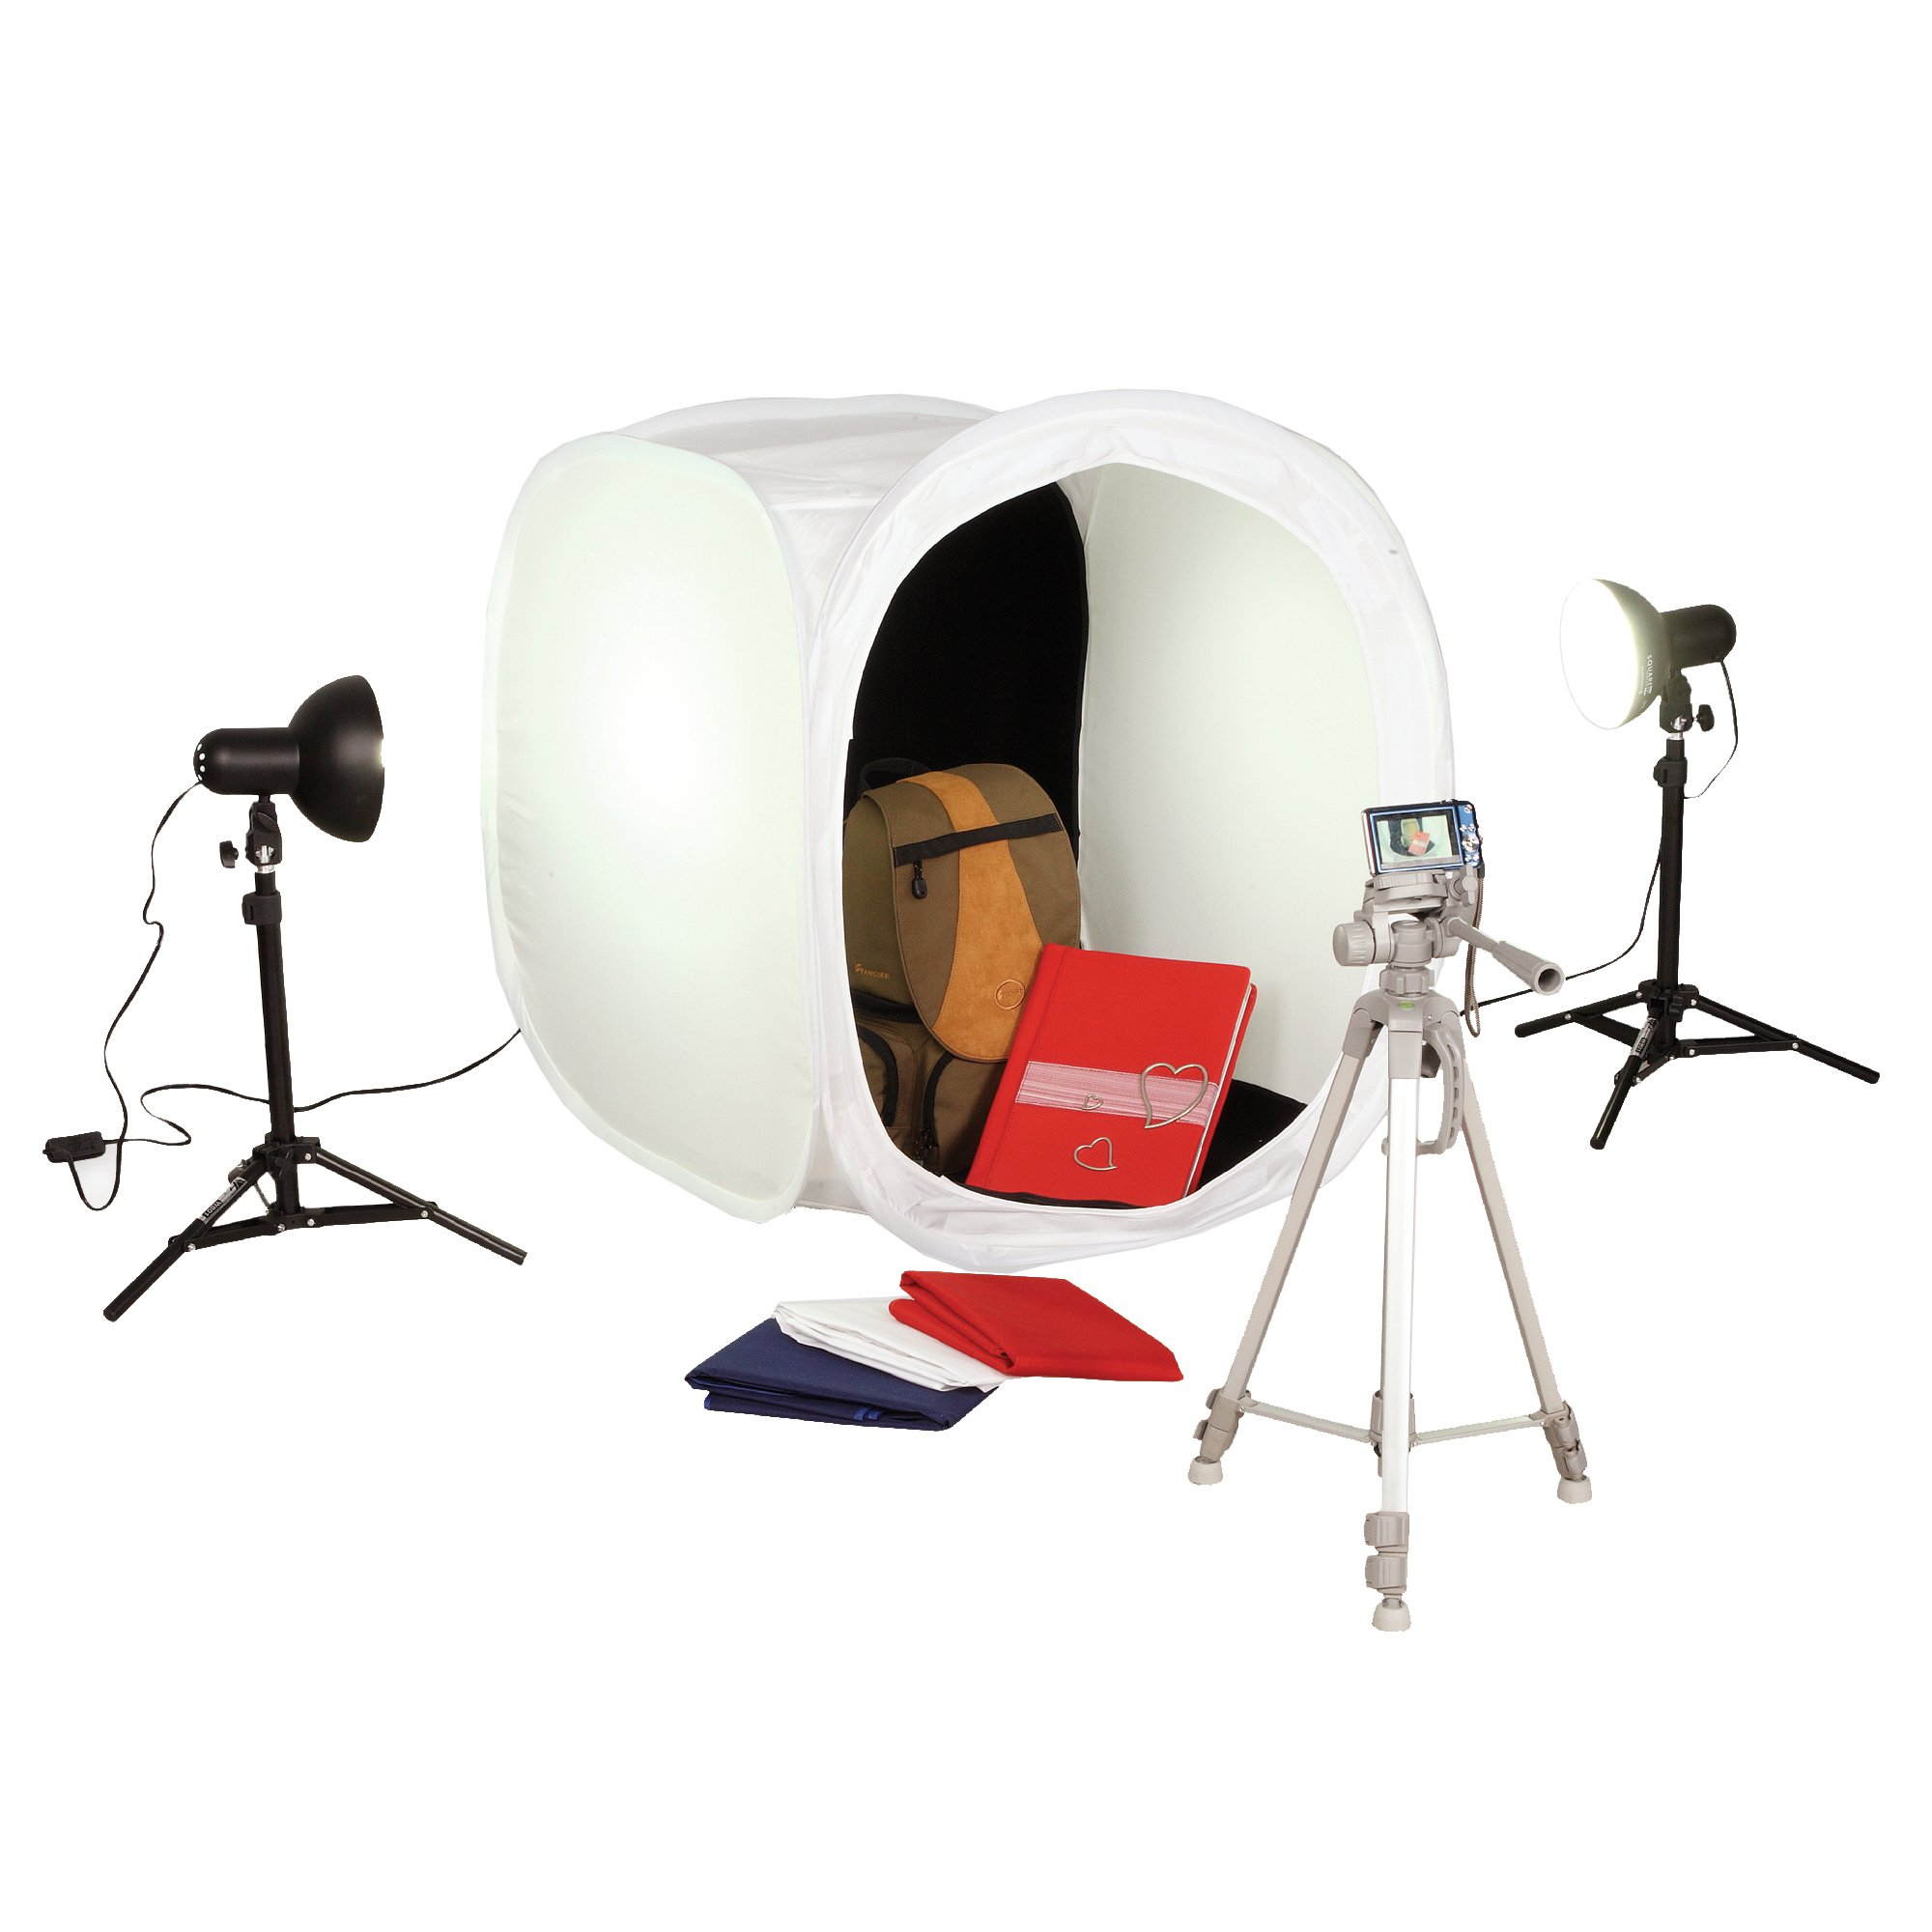 1050 Square Perfect SP500 Platinum Photo Studio In A Box with 2 Light Tents & 8 Backgrounds For Product Photography by SQUARE PERFECT